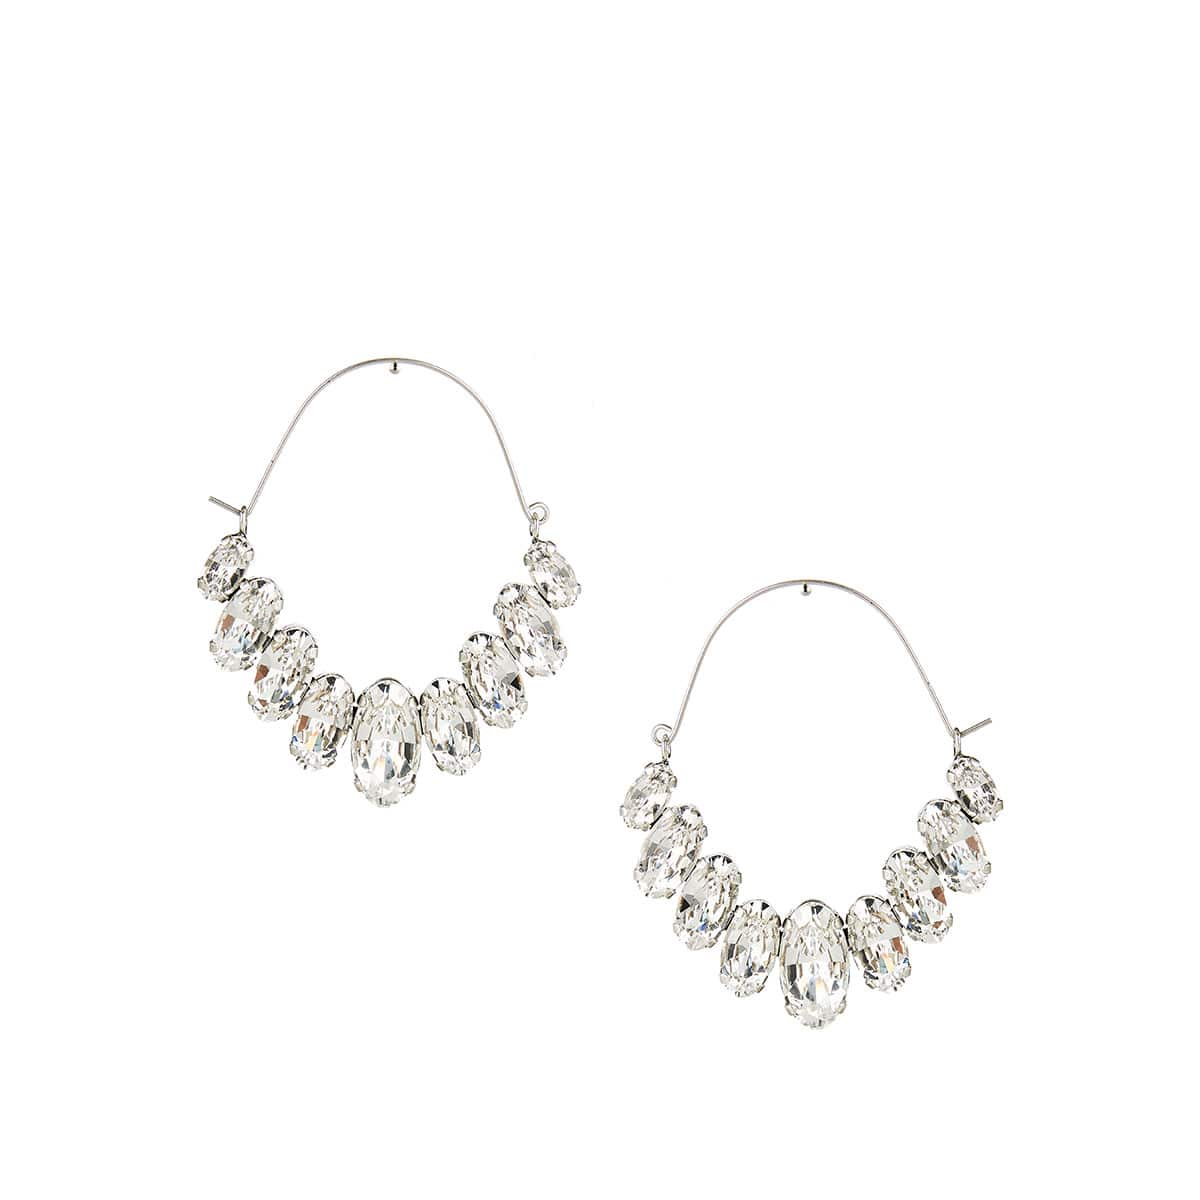 Ho La La crystal-embellished earrings